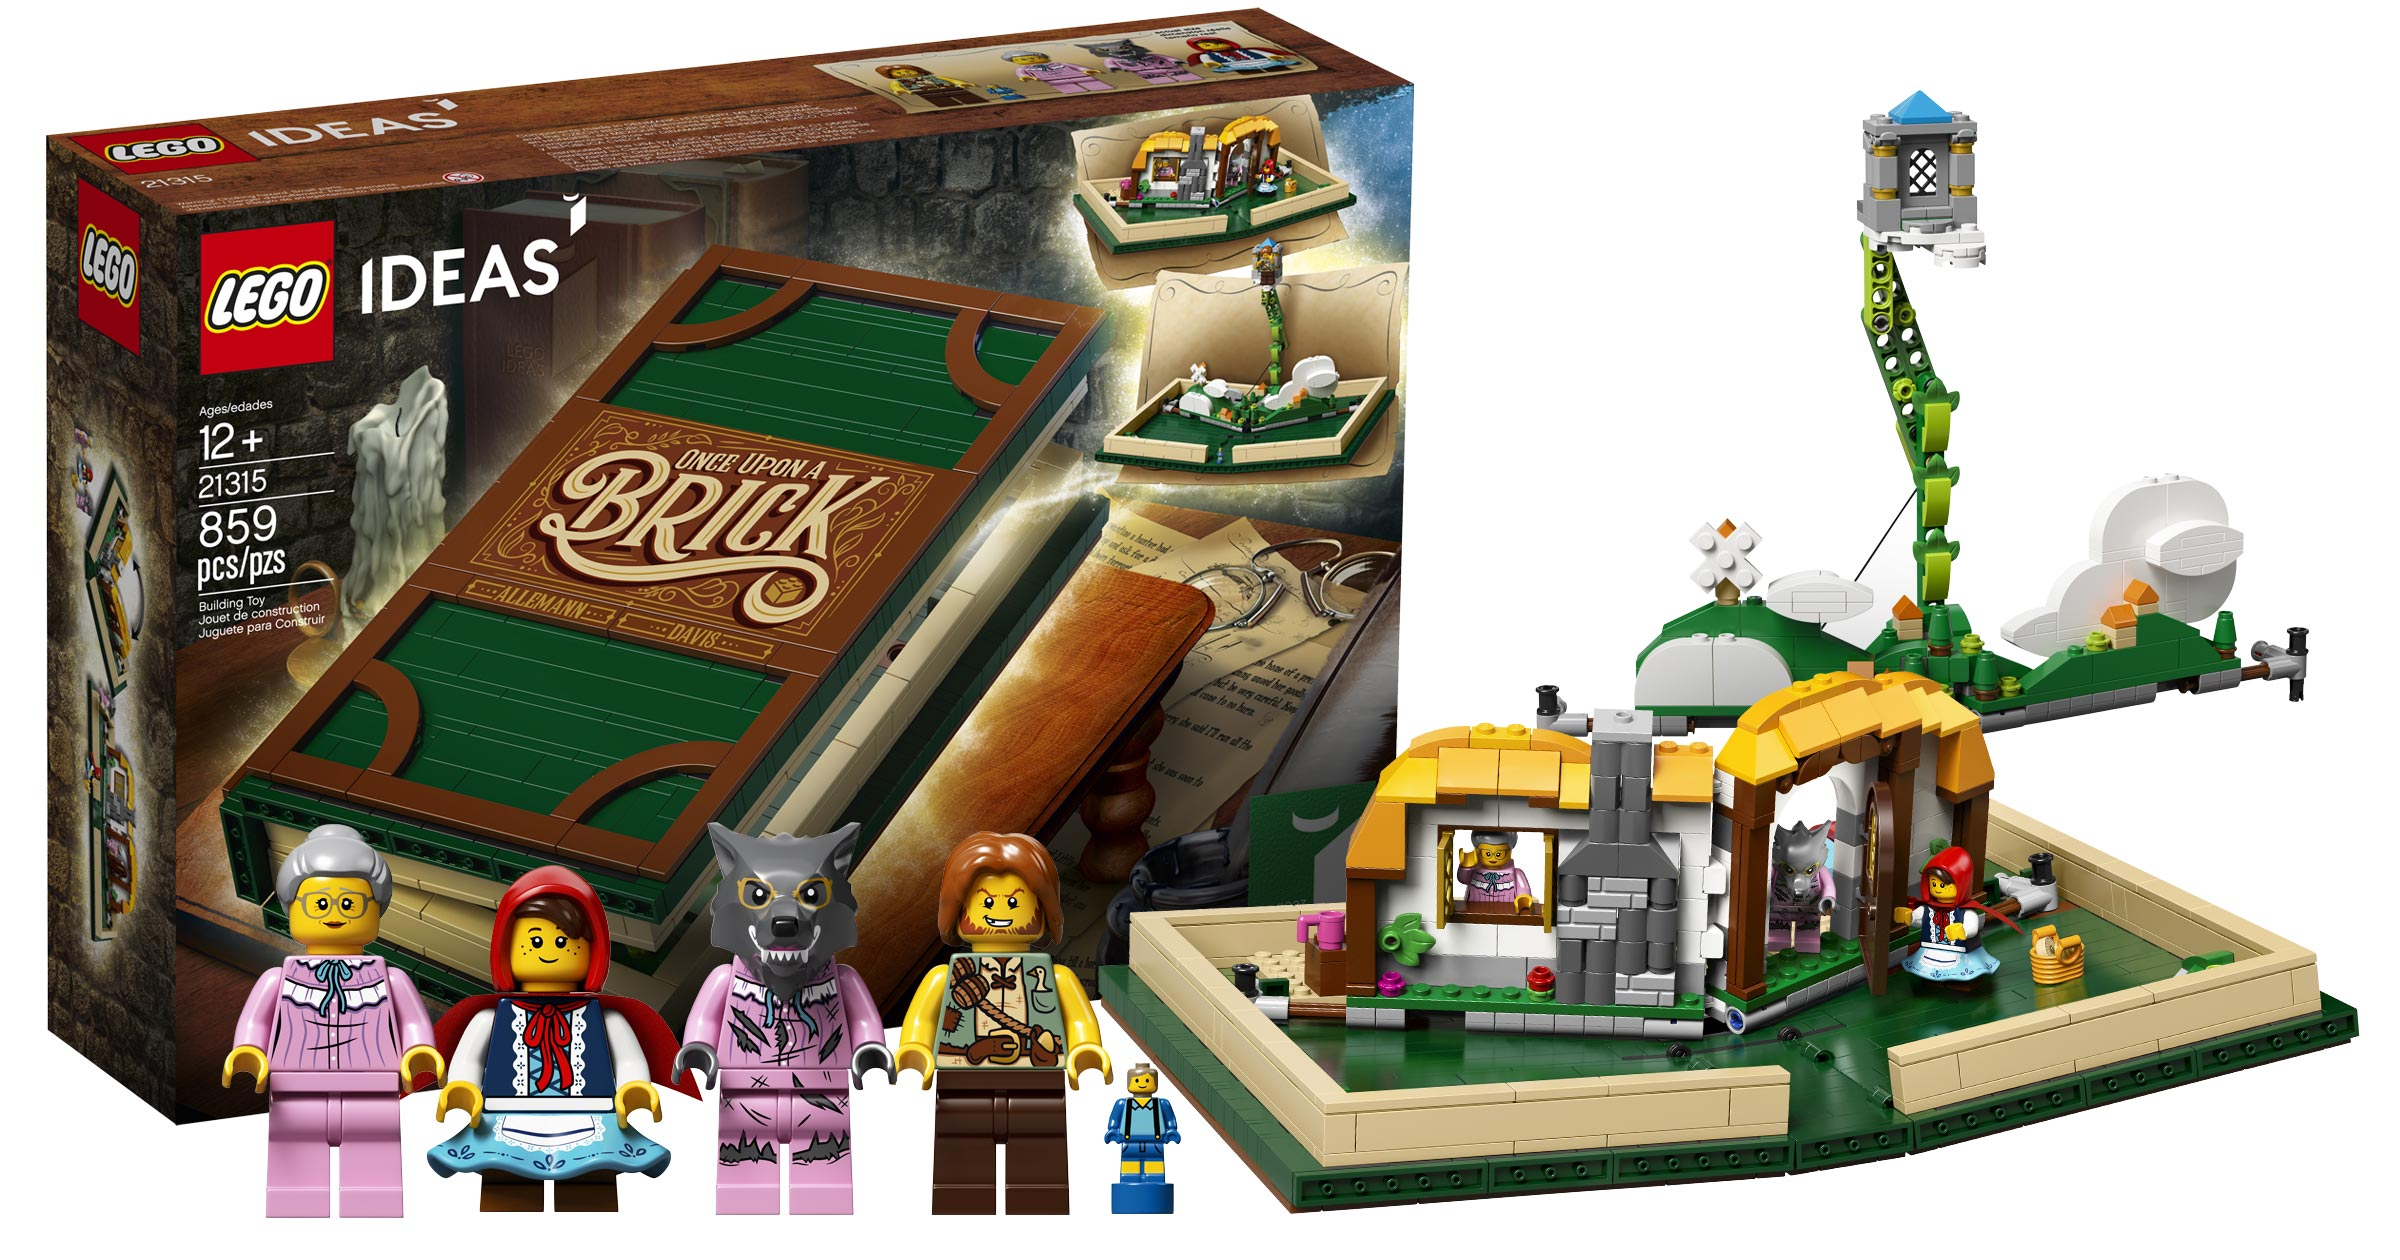 Pop Up Book Cover Lego Ideas 21315 Pop Up Book Cover The Brothers Brick